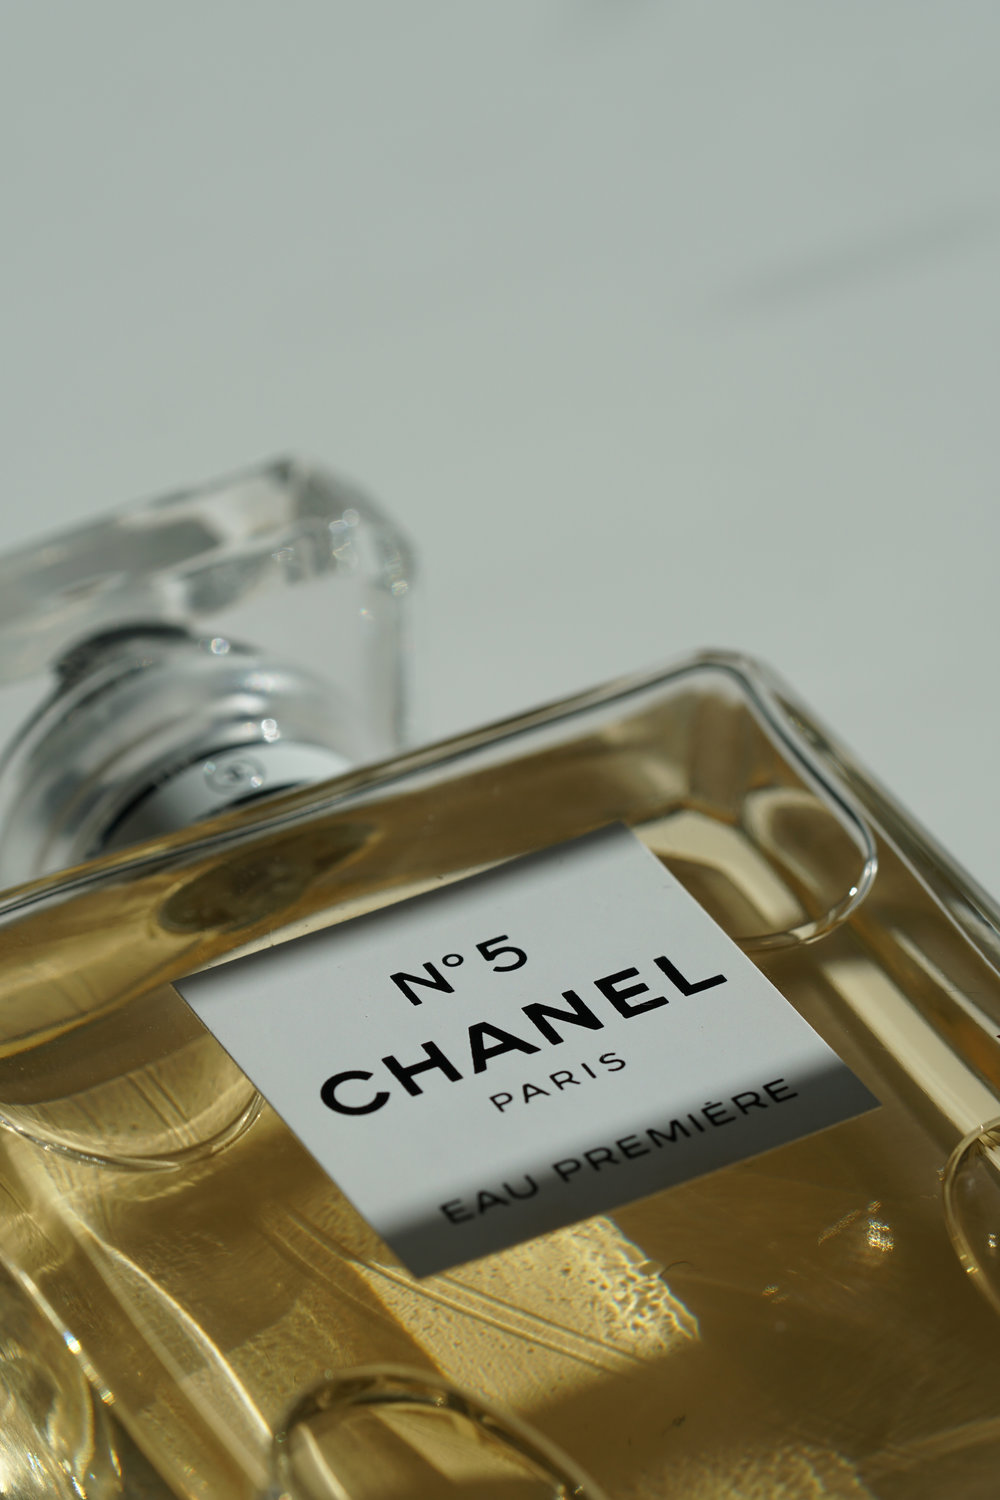 CHANEL-BOTTLE-2.jpg